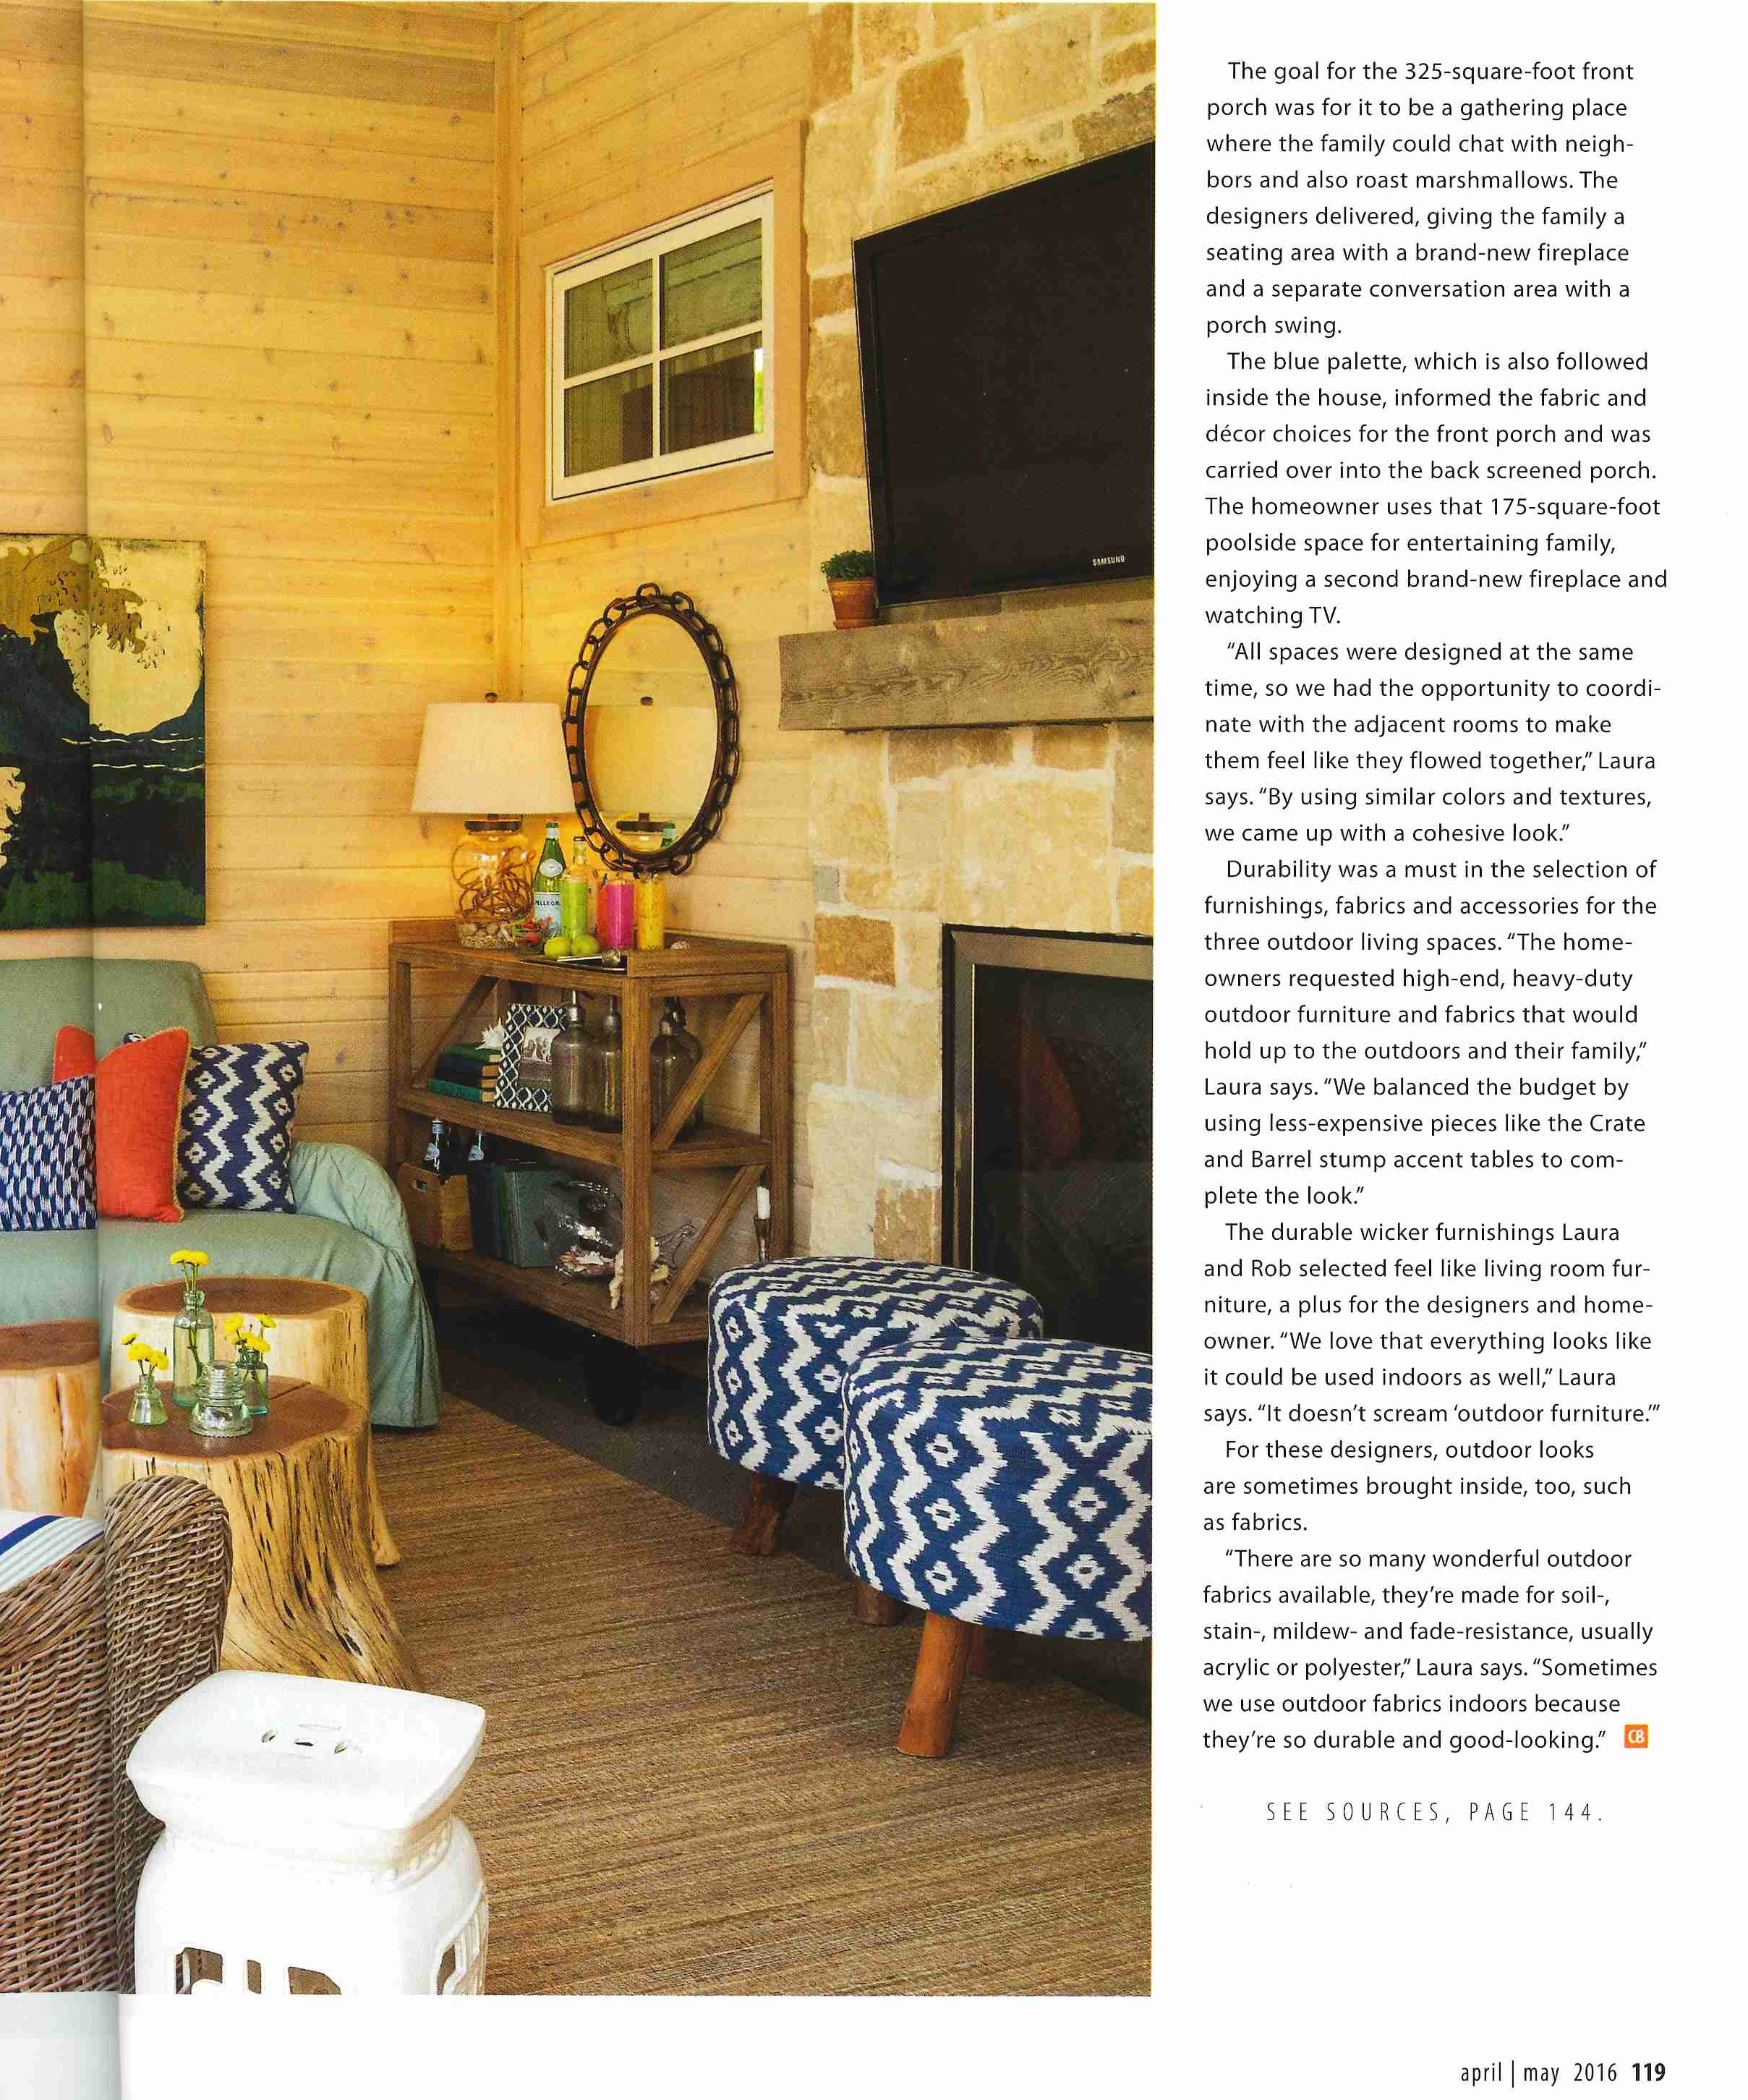 cottages & bungalows pg 119.jpg